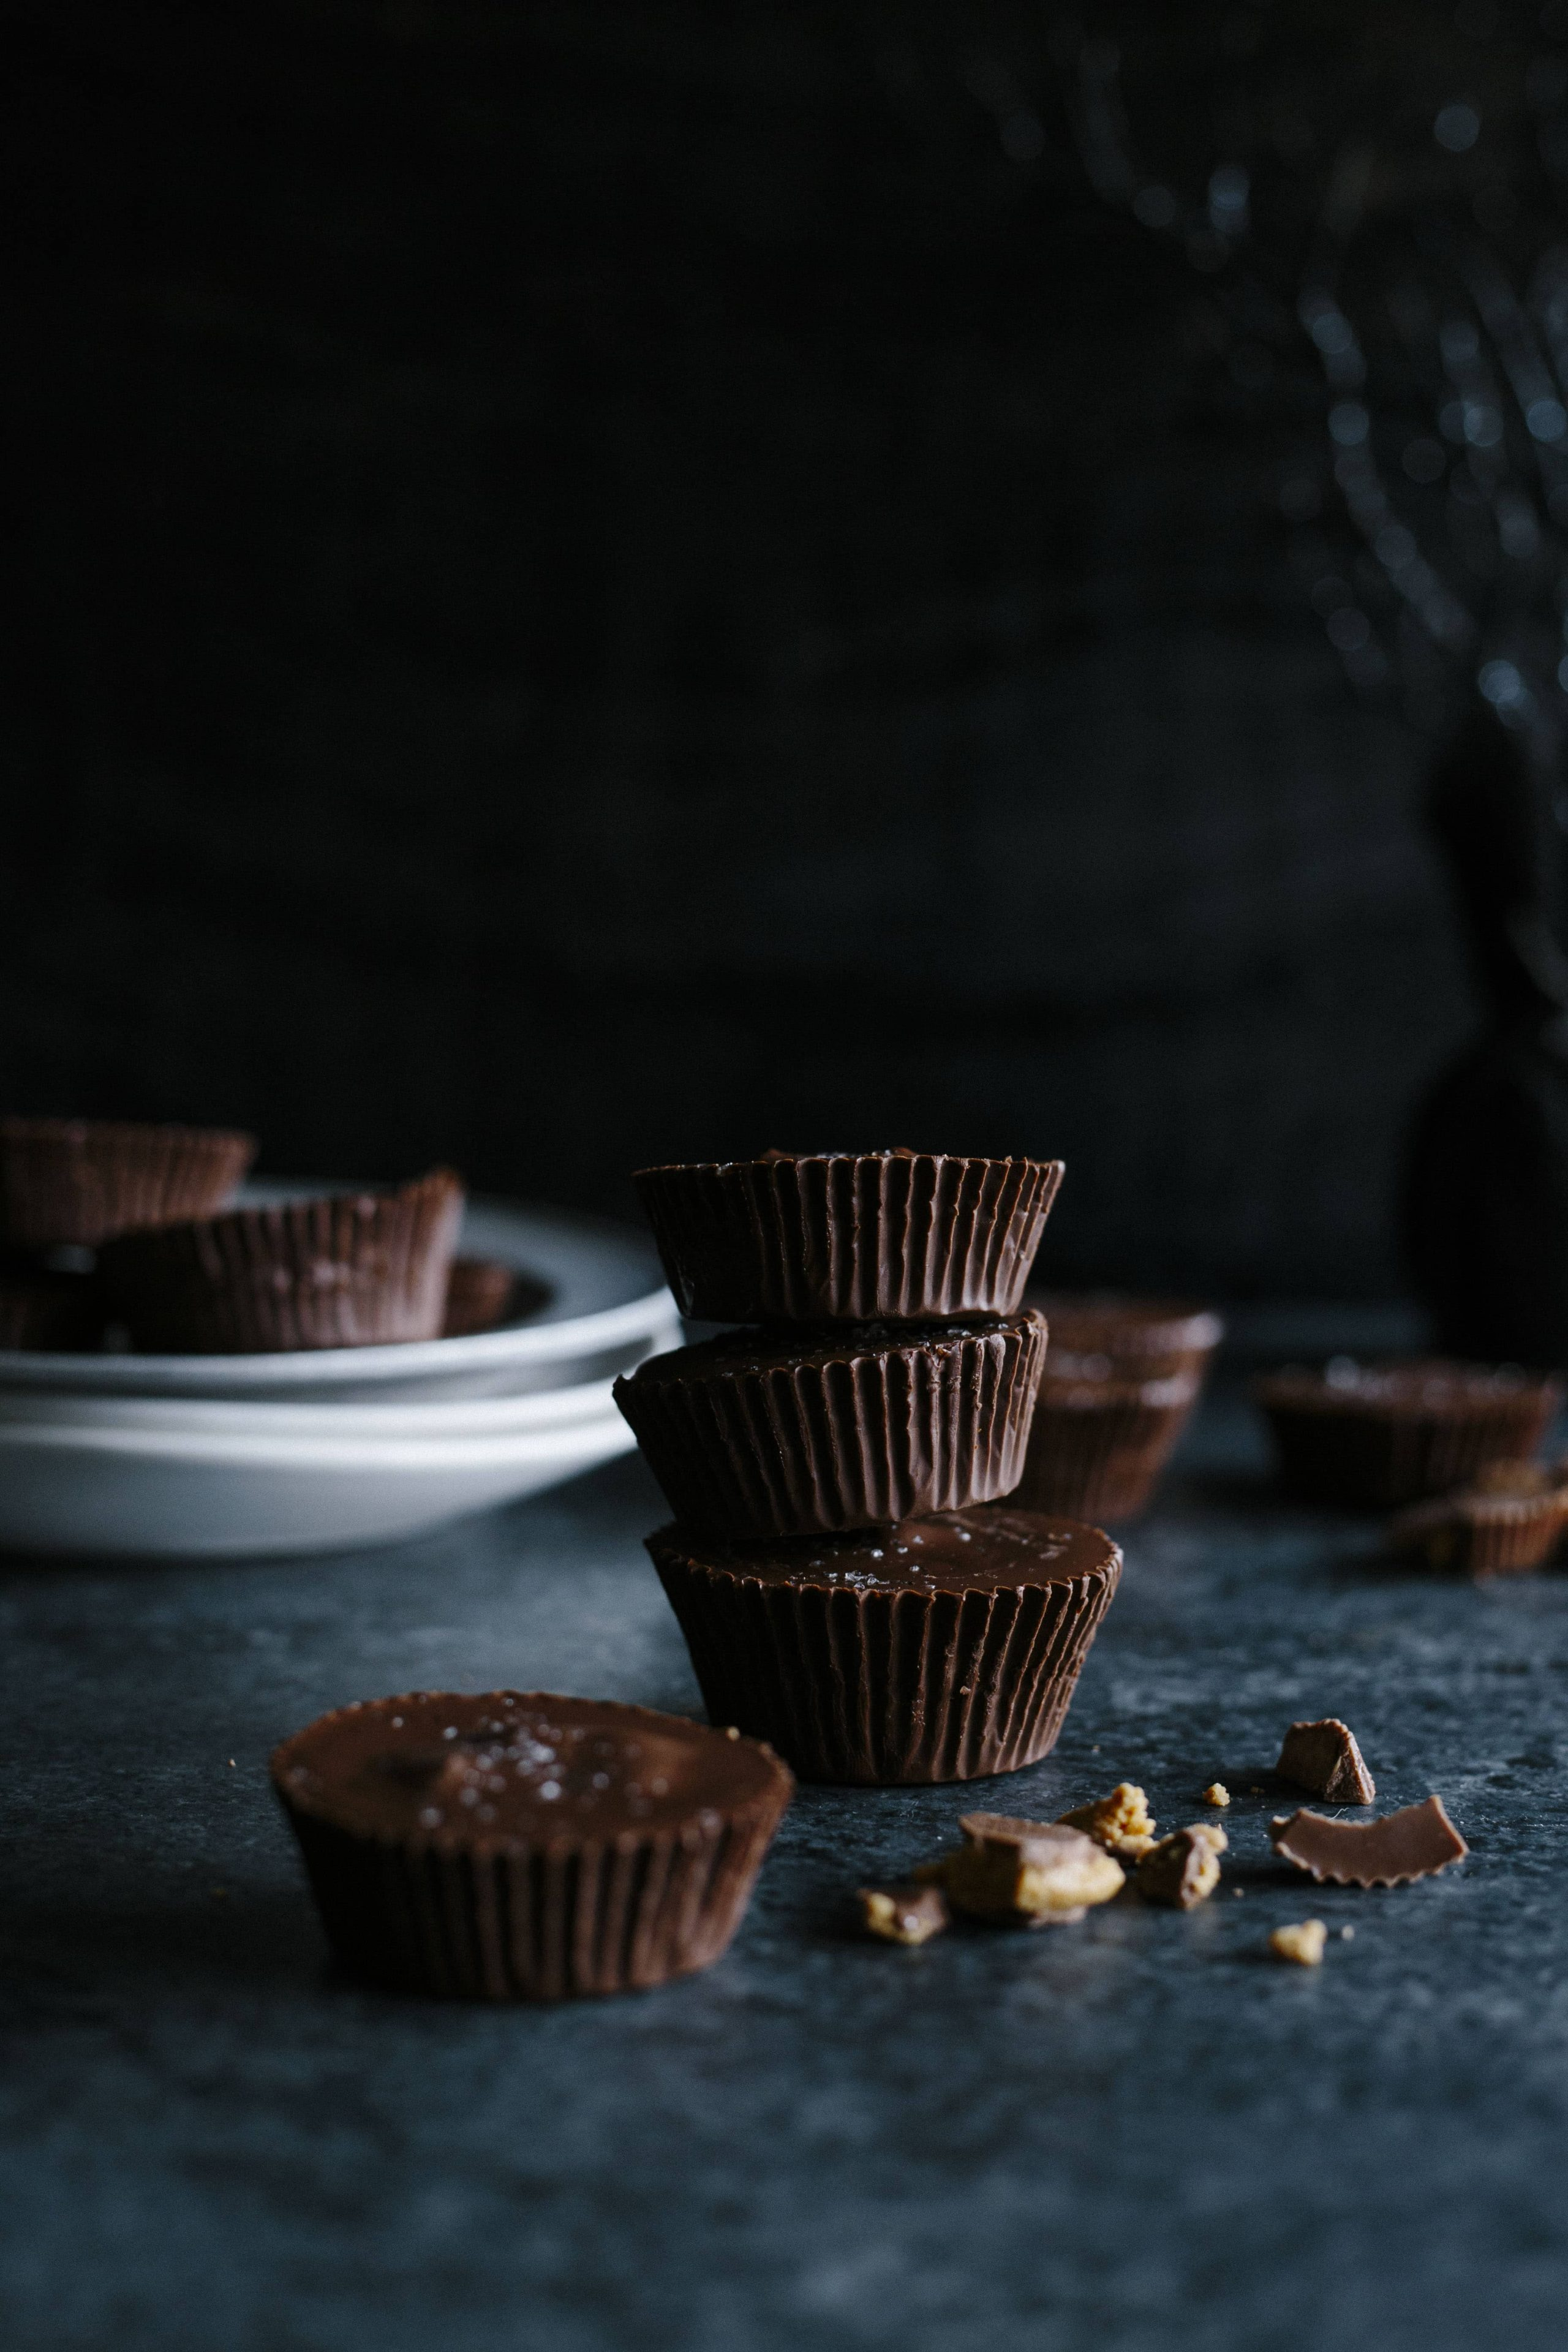 Halloween Candy Cups | Make your own 3-ingredient chocolate cups filled with leftover Halloween candy! | thealmondeater.com